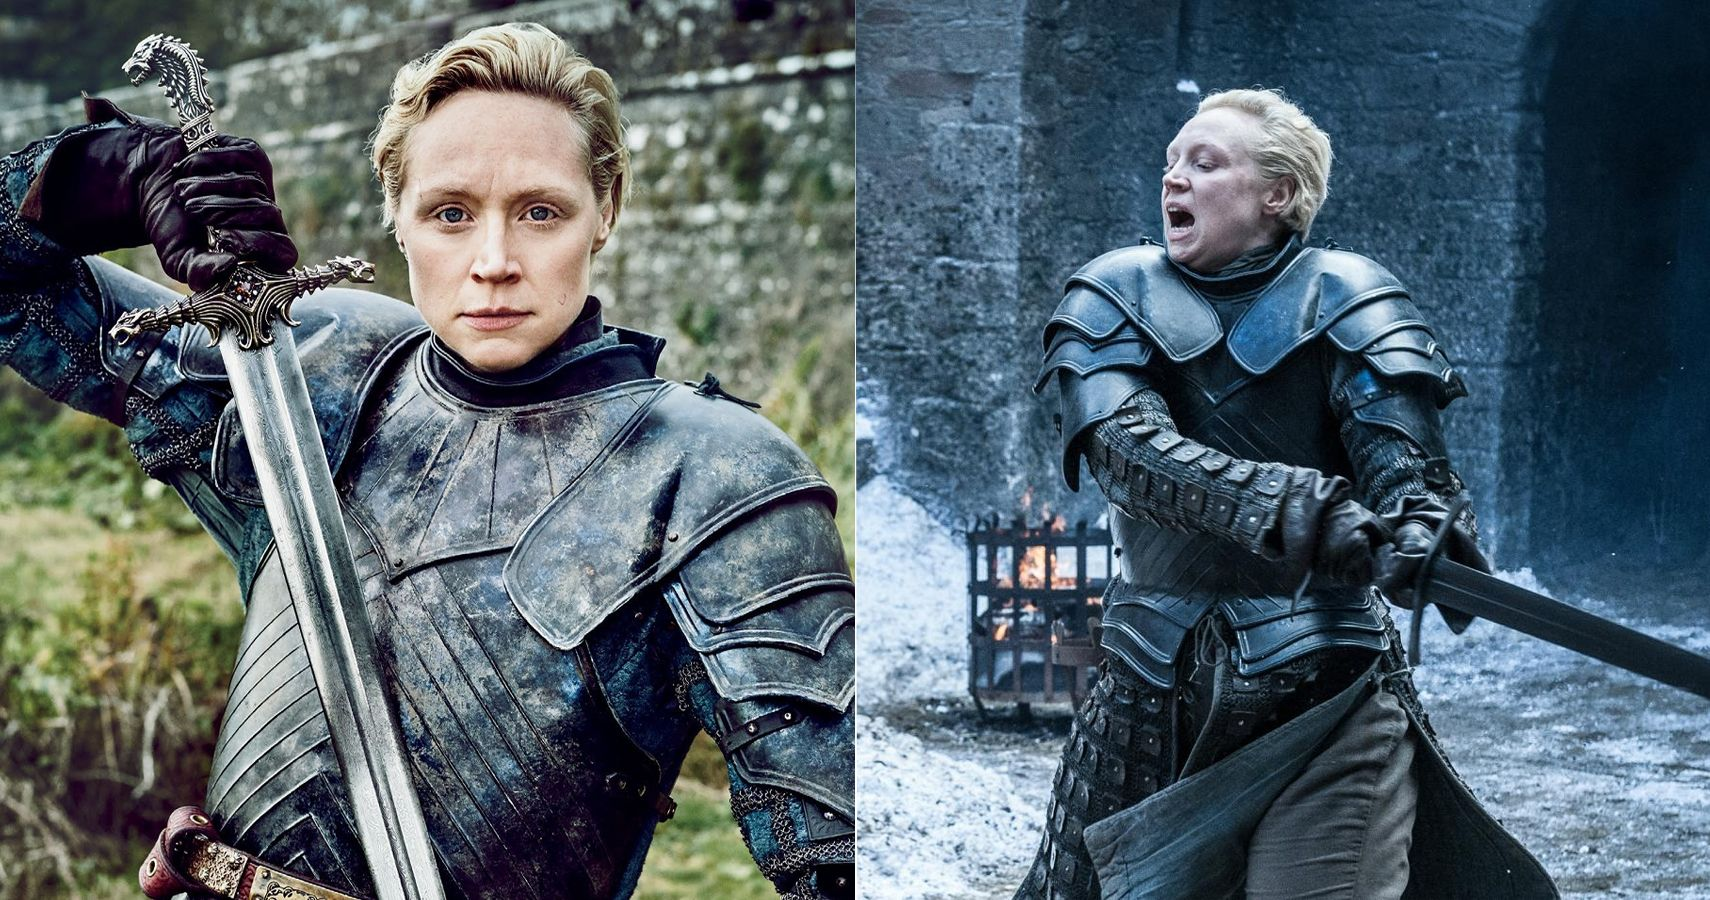 Brienne Of Tarth: An Honorable Woman's Journey In Game Of Thrones